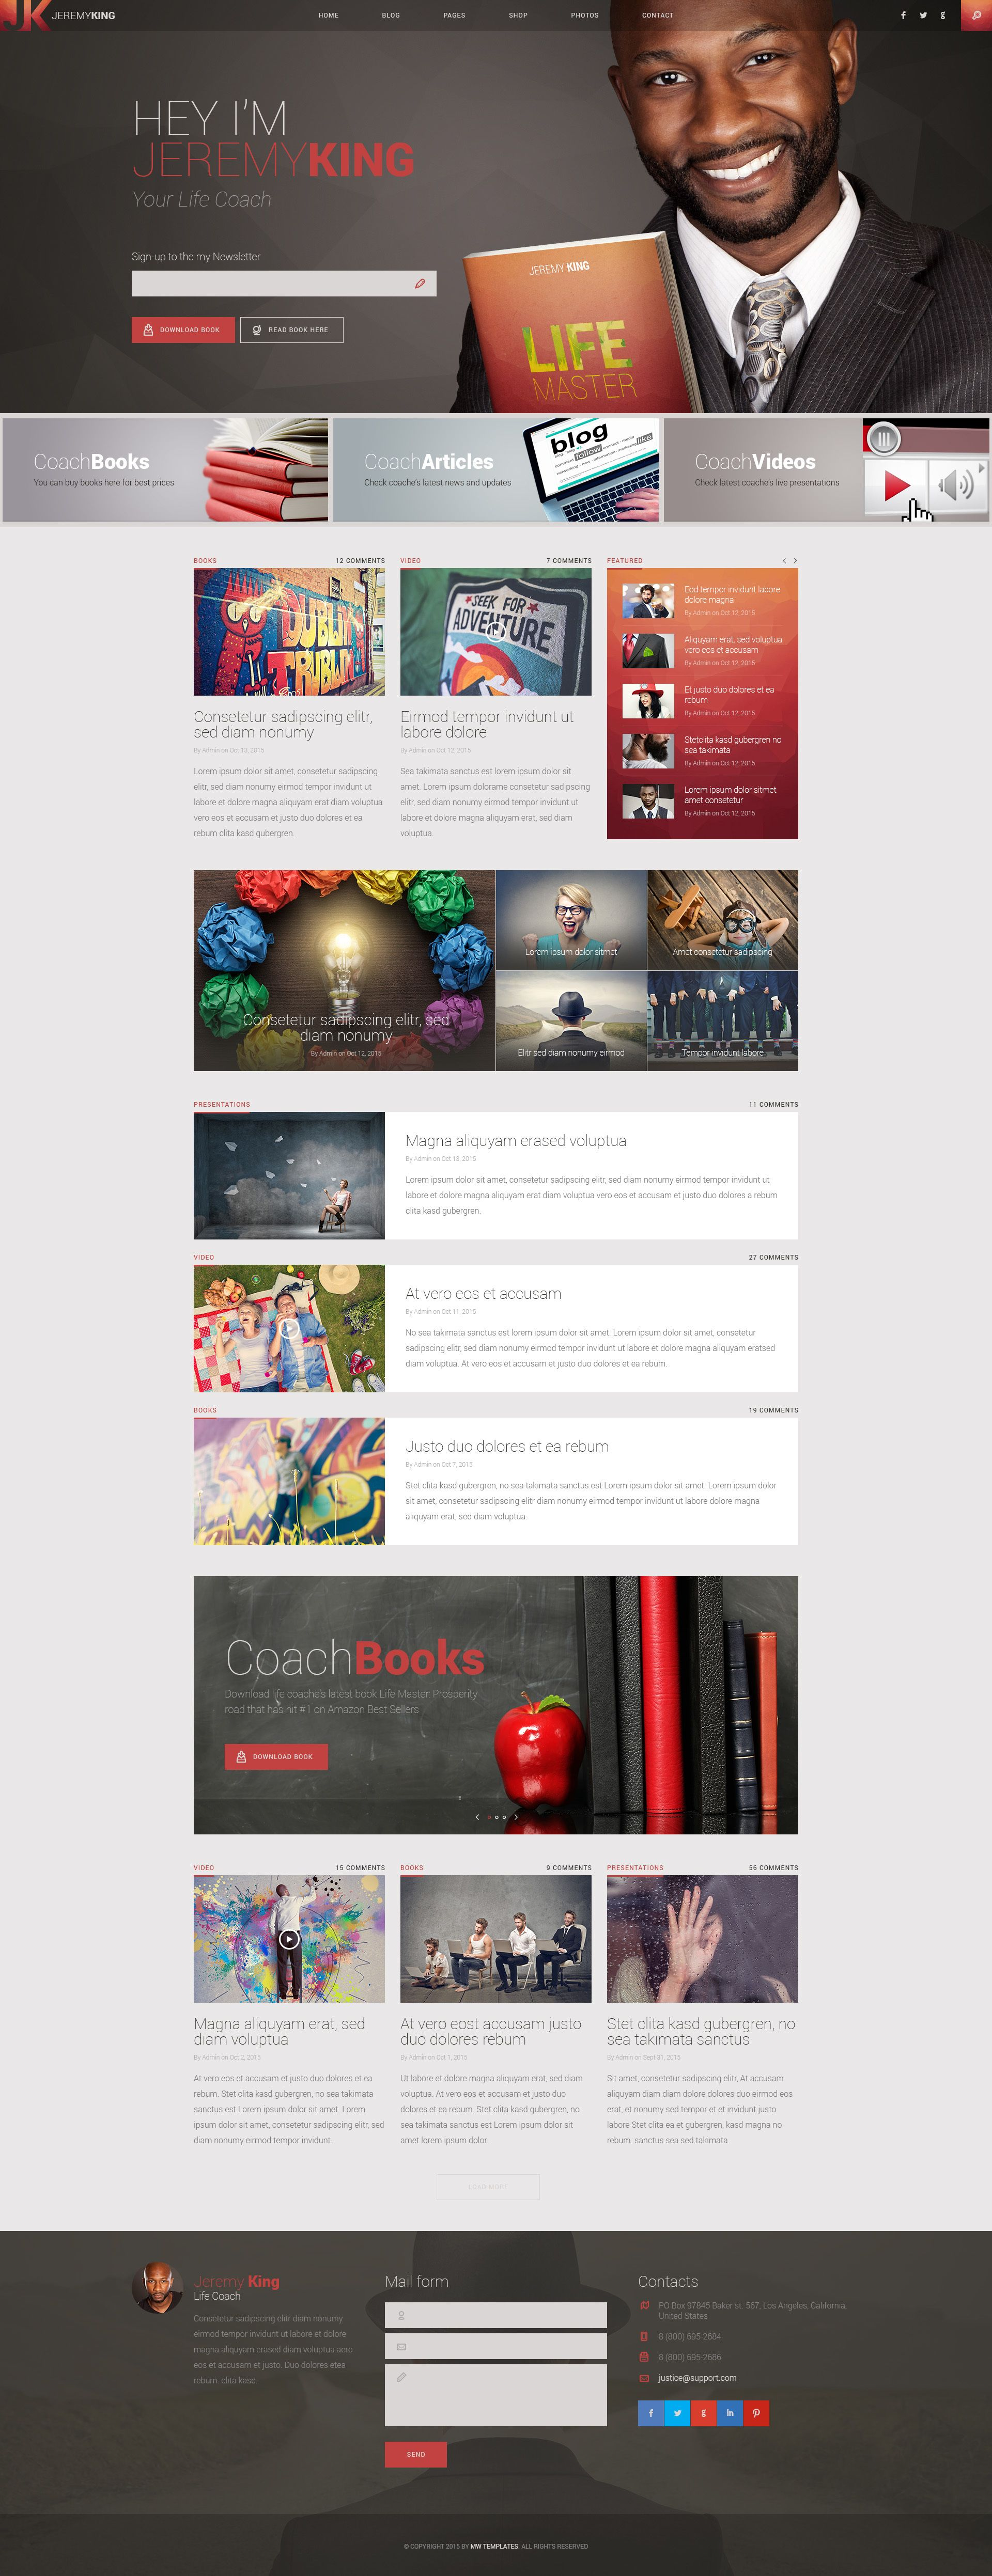 Life Coach - Personal page PSD template | Web banner design